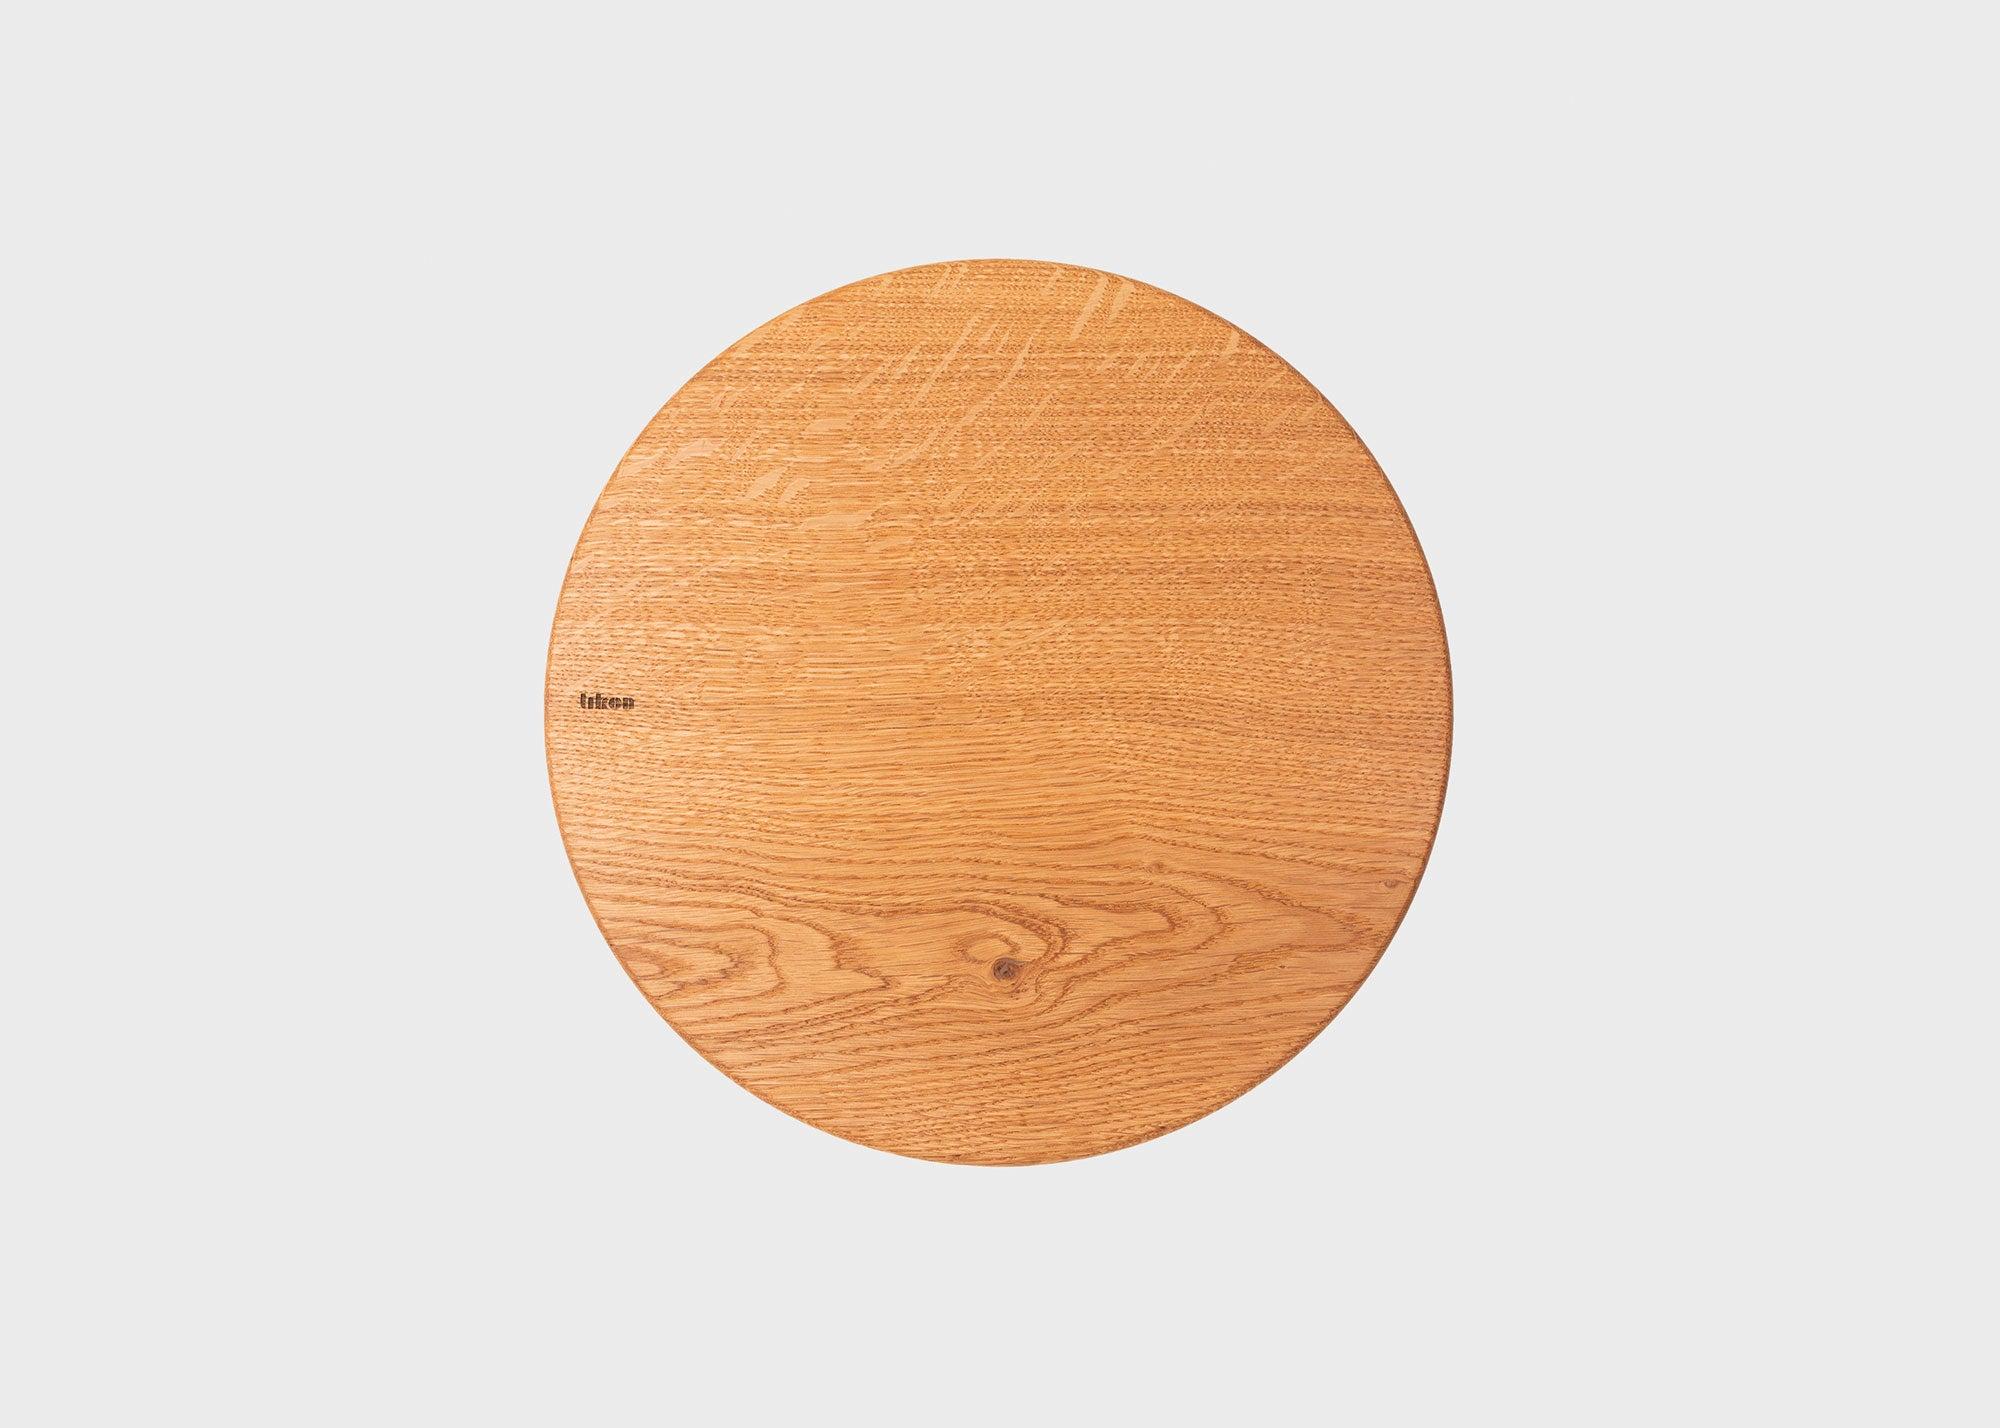 OAK WOOD ROUND CUTTING BOARD